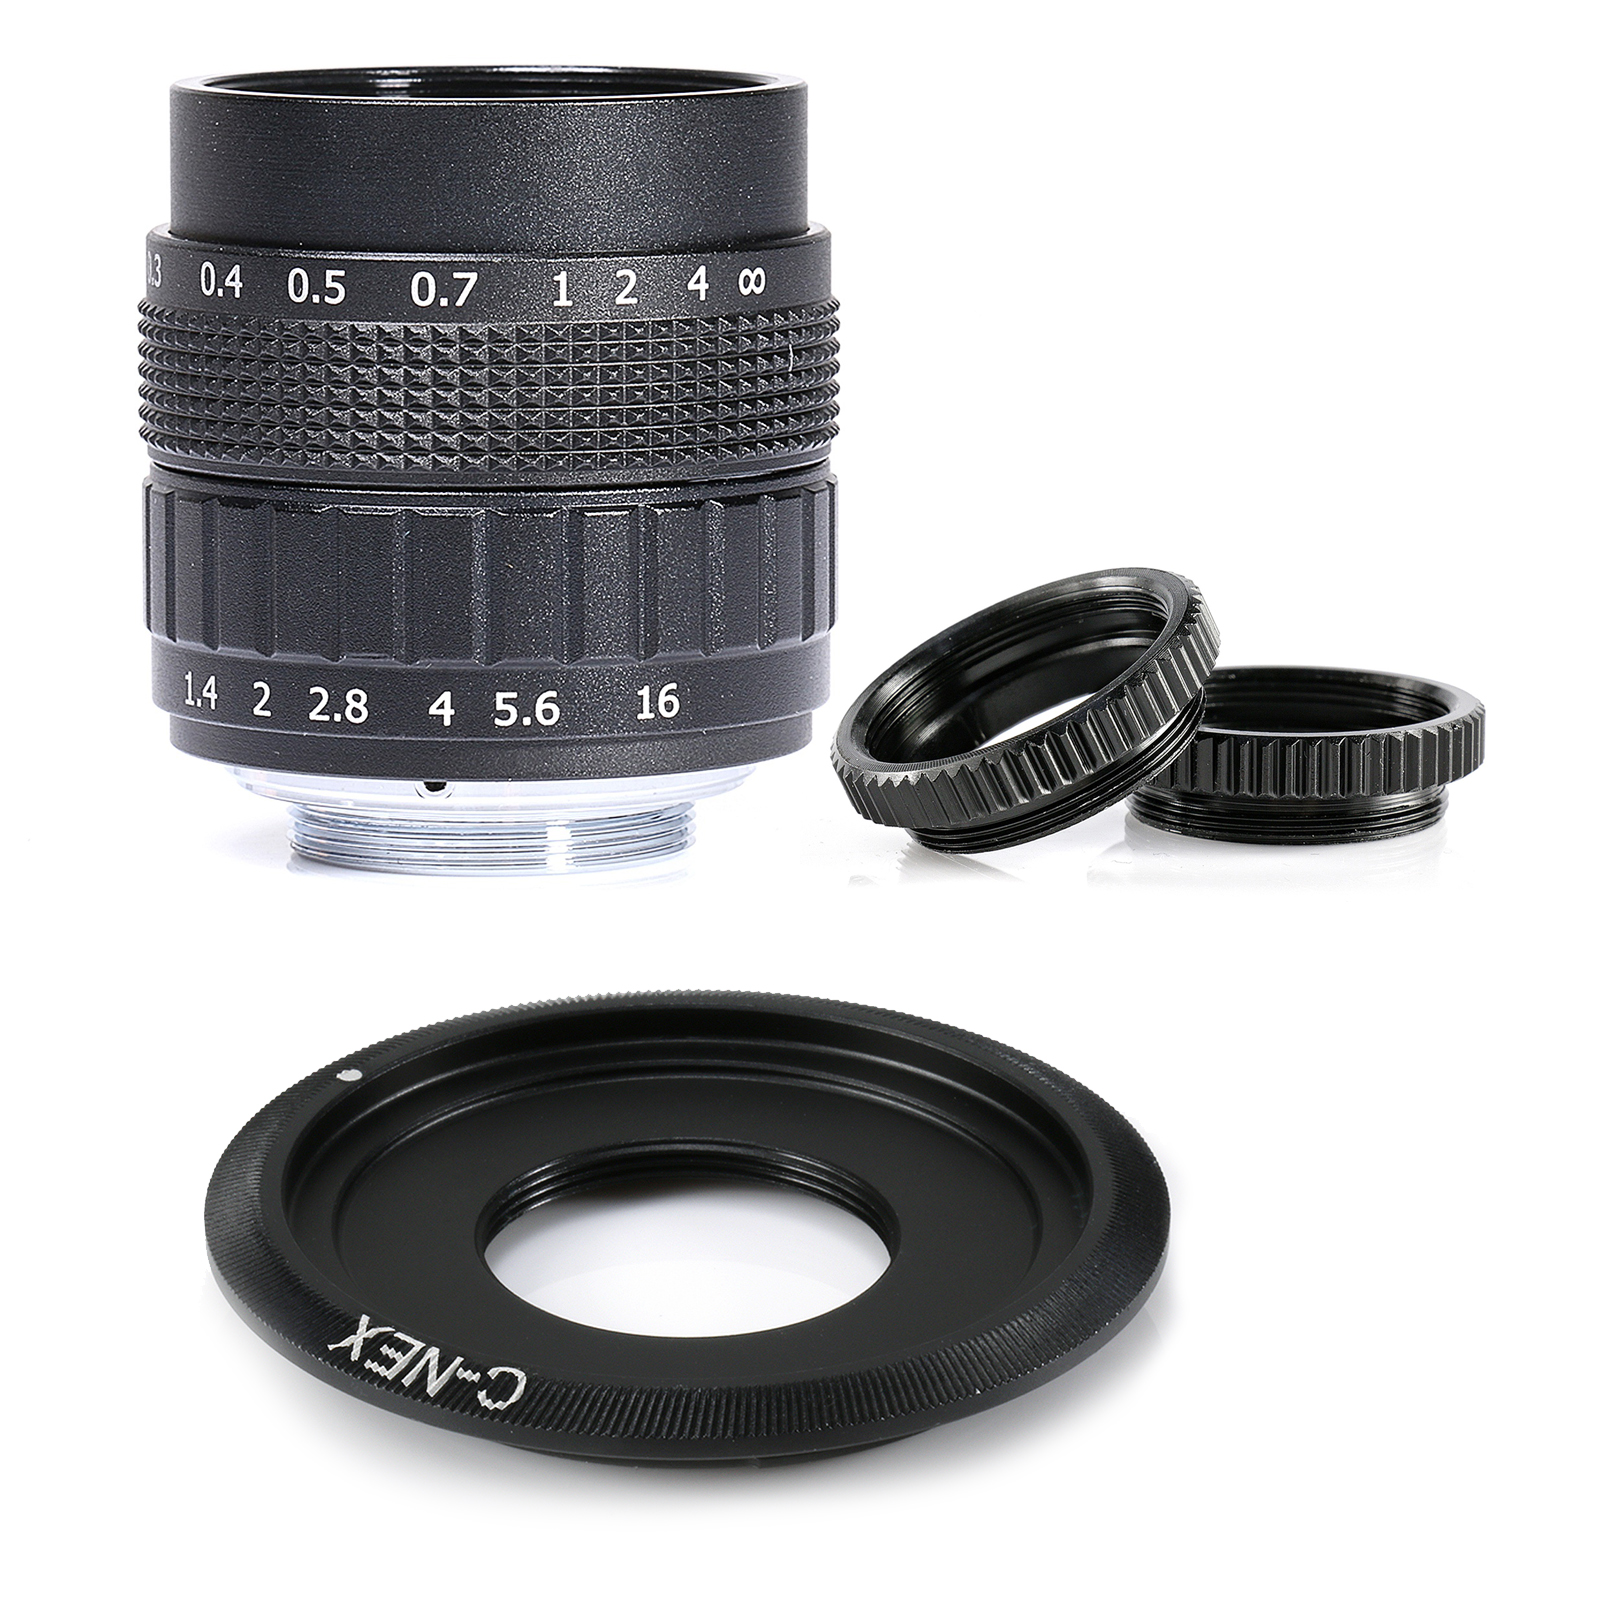 Amiable Fujian 50mm F/1.4 Aps-c Cctv Lens+adapter Ring+2 Macro Ring For Sony Nex Mirroless Camera A5300/a6000/a6300/a7/a7ii/a9